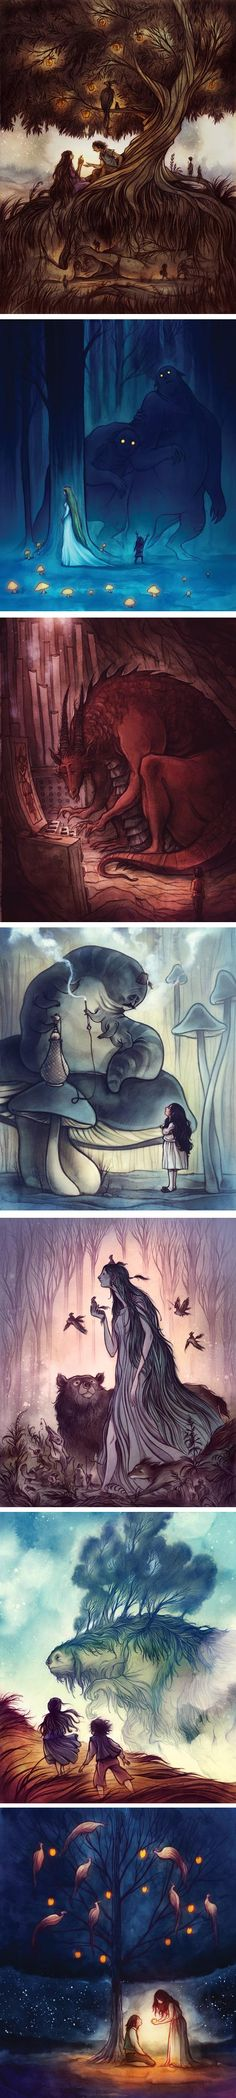 Fairy Tales - Cory Godbey. Absolutely wonderful!